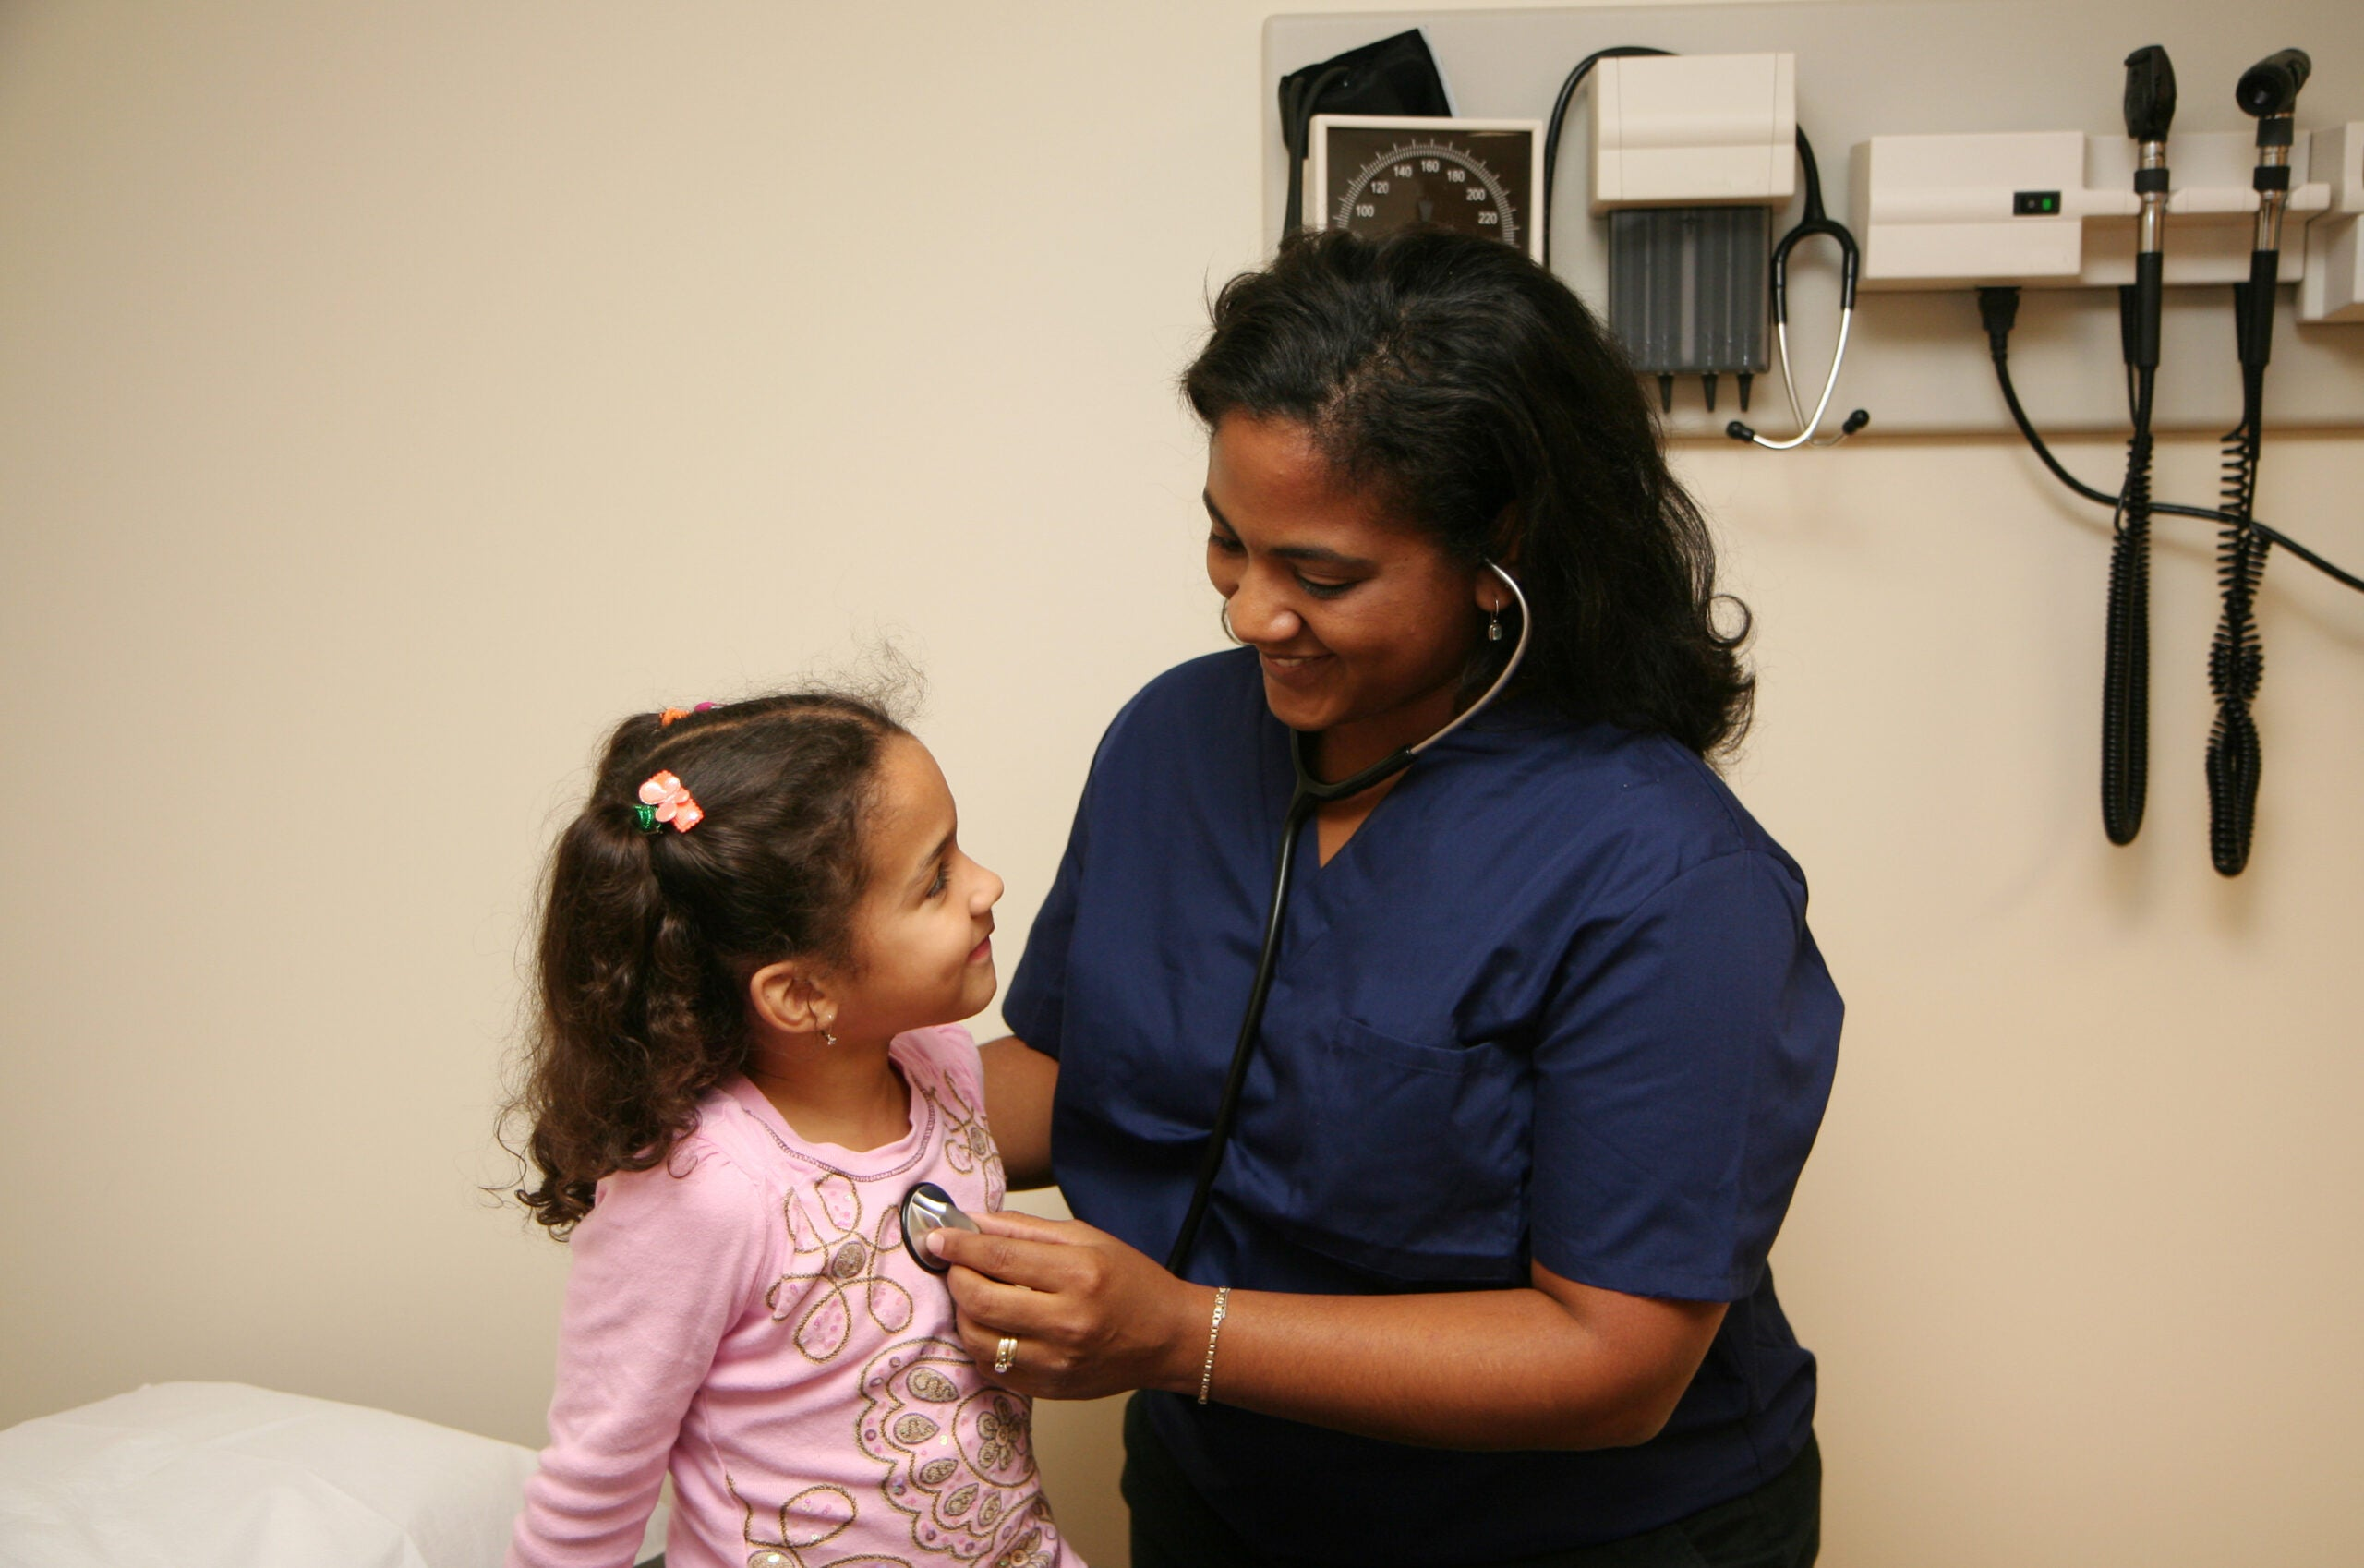 Weight loss surgery should be offered to more kids with obesity